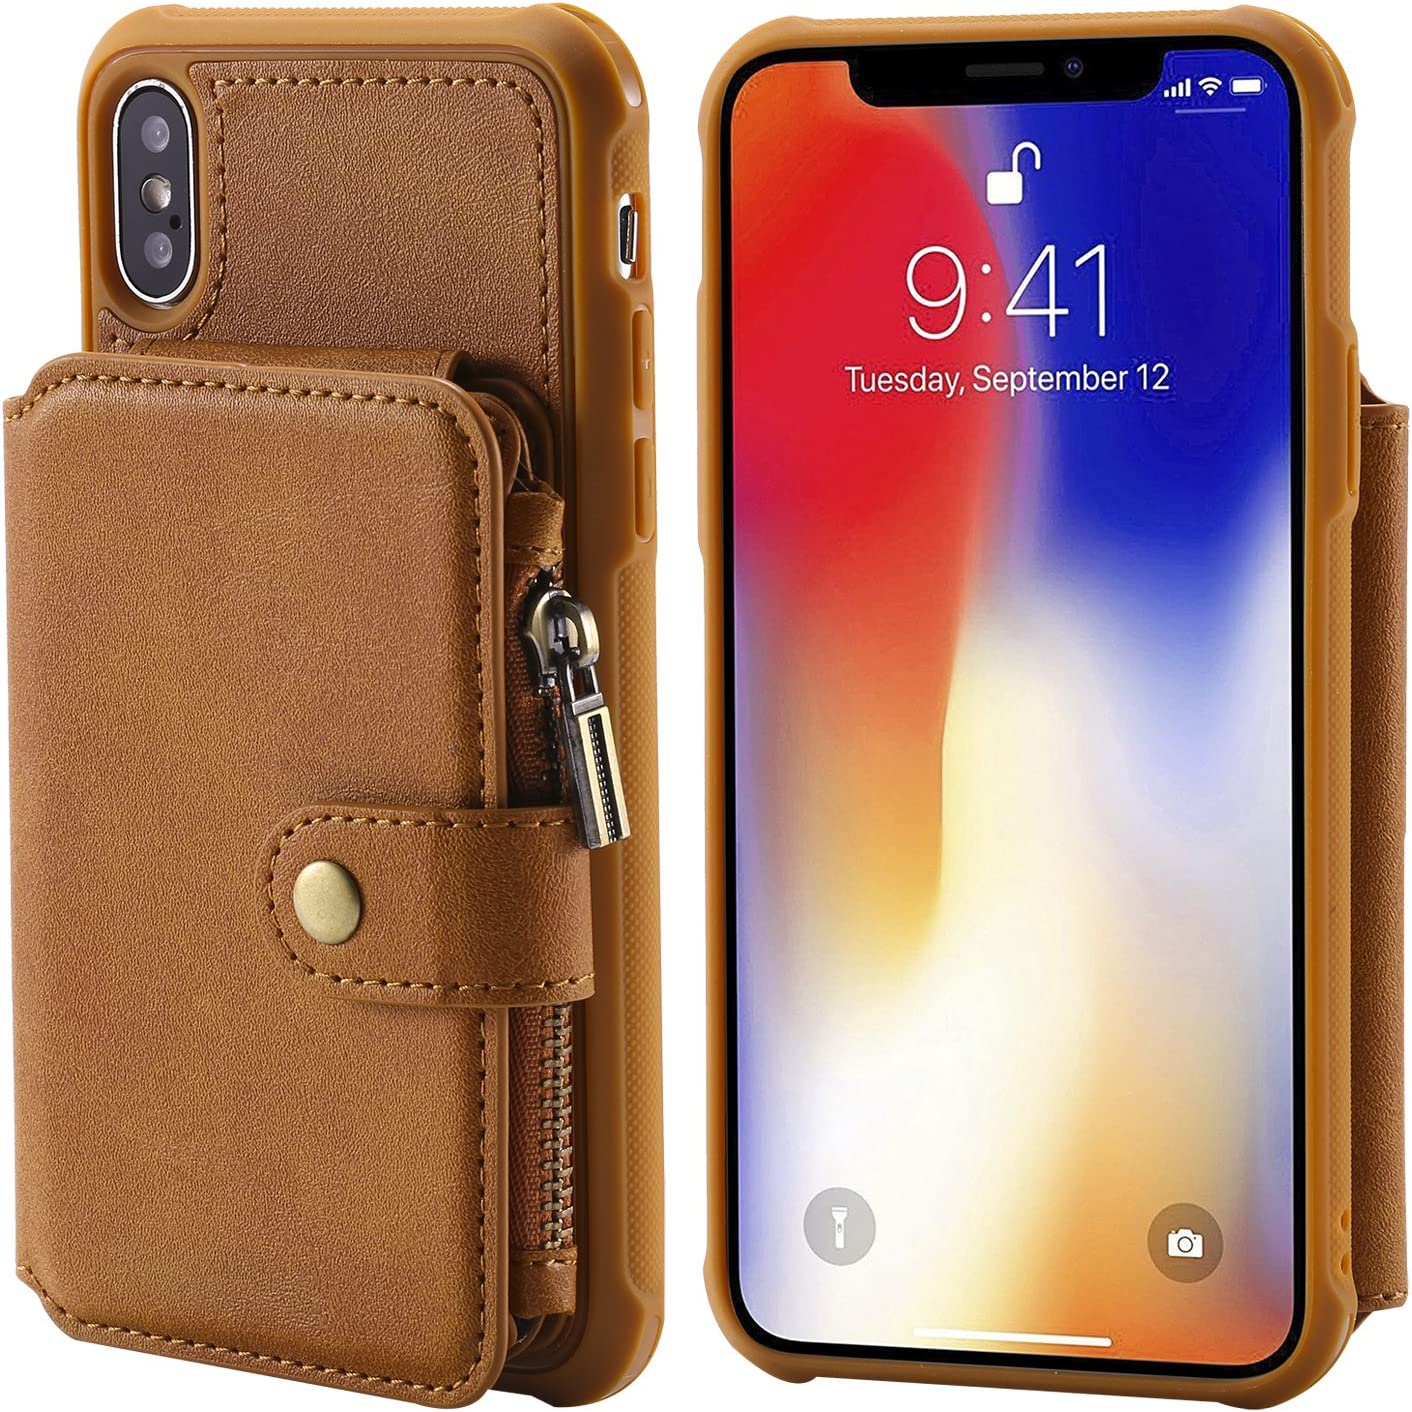 Flip Case Cover for iPhone Xs 5.8inch Brown Leather Waterproof Kickstand with Zipper Coin Pocket 8 Card Slots(ID Card,Credit Card) of 3 Photo Frame and Cash Slot Fashion Gift Girls Boys Unisex